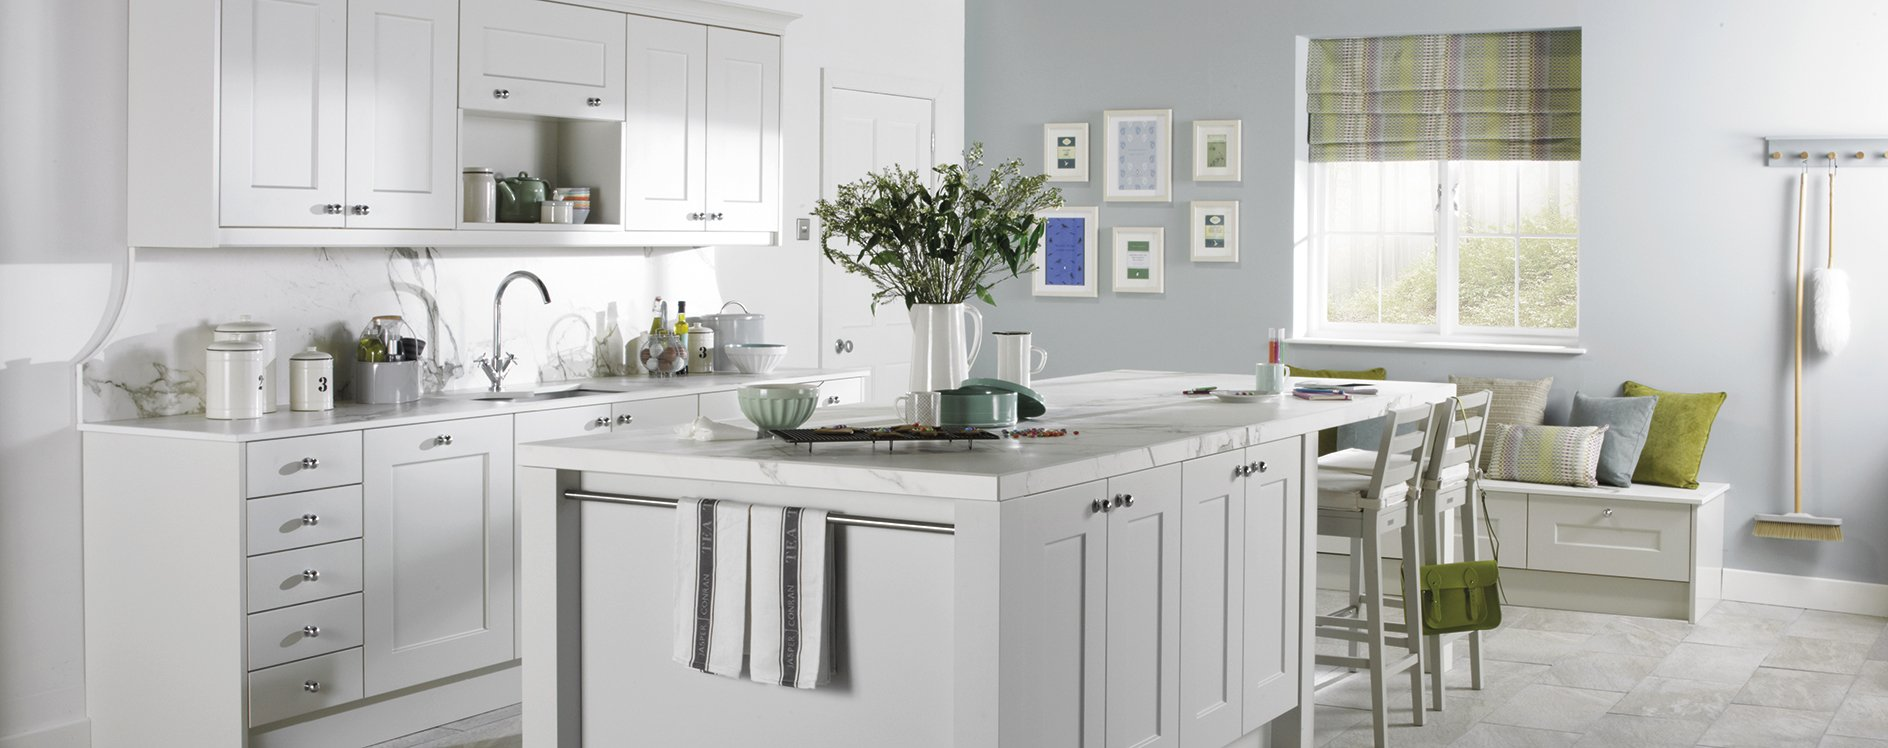 Valentino Kitchens - Stowe Kitchens